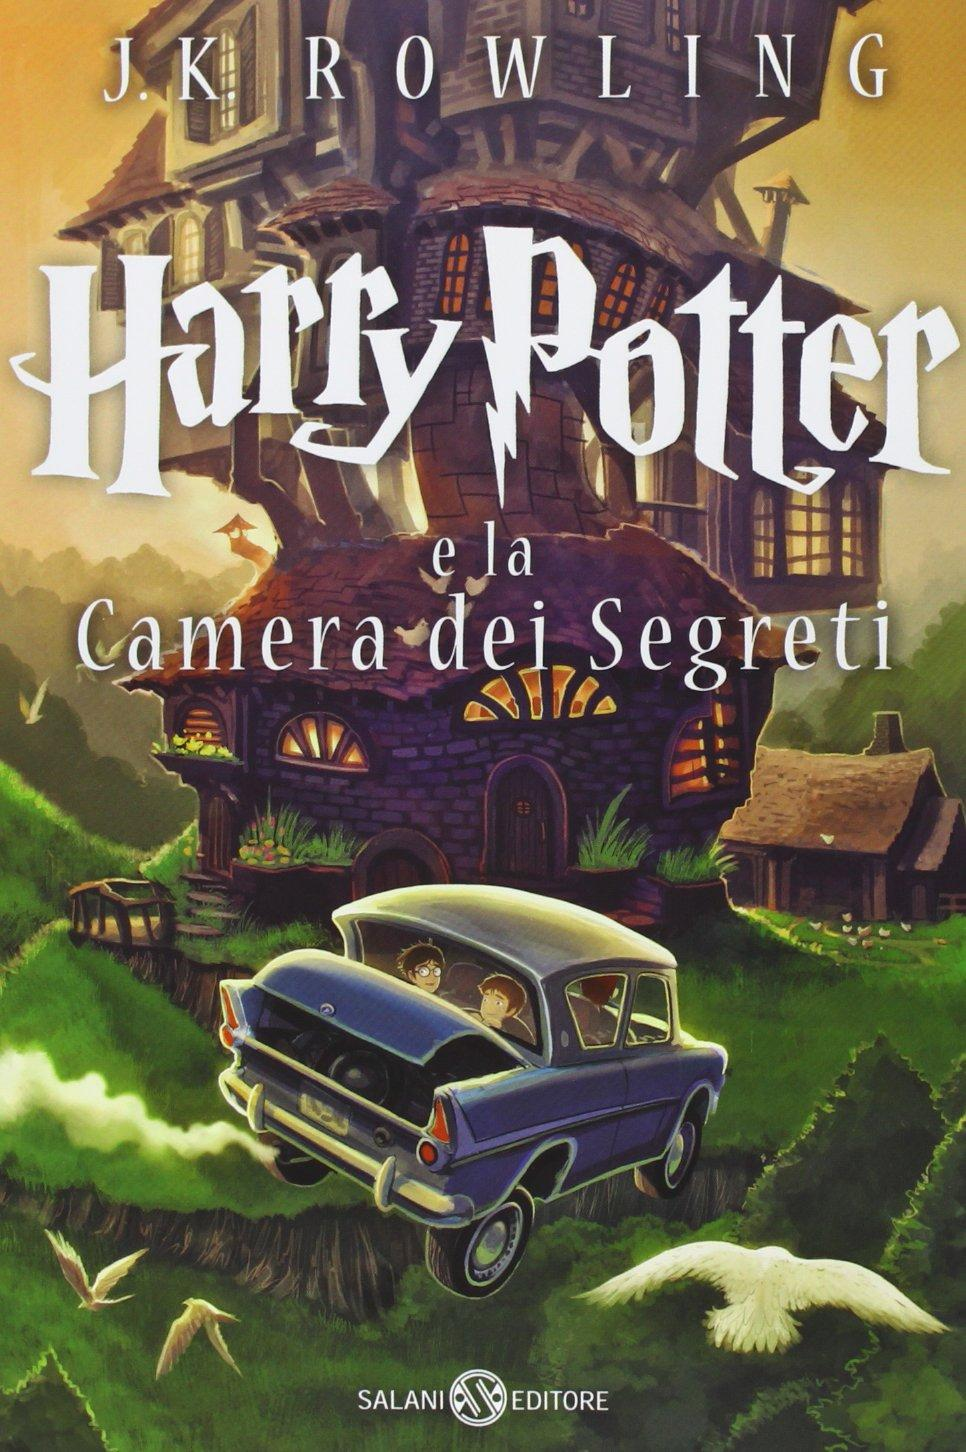 Harry Potter. La serie completa: Amazon.it: J. K. Rowling